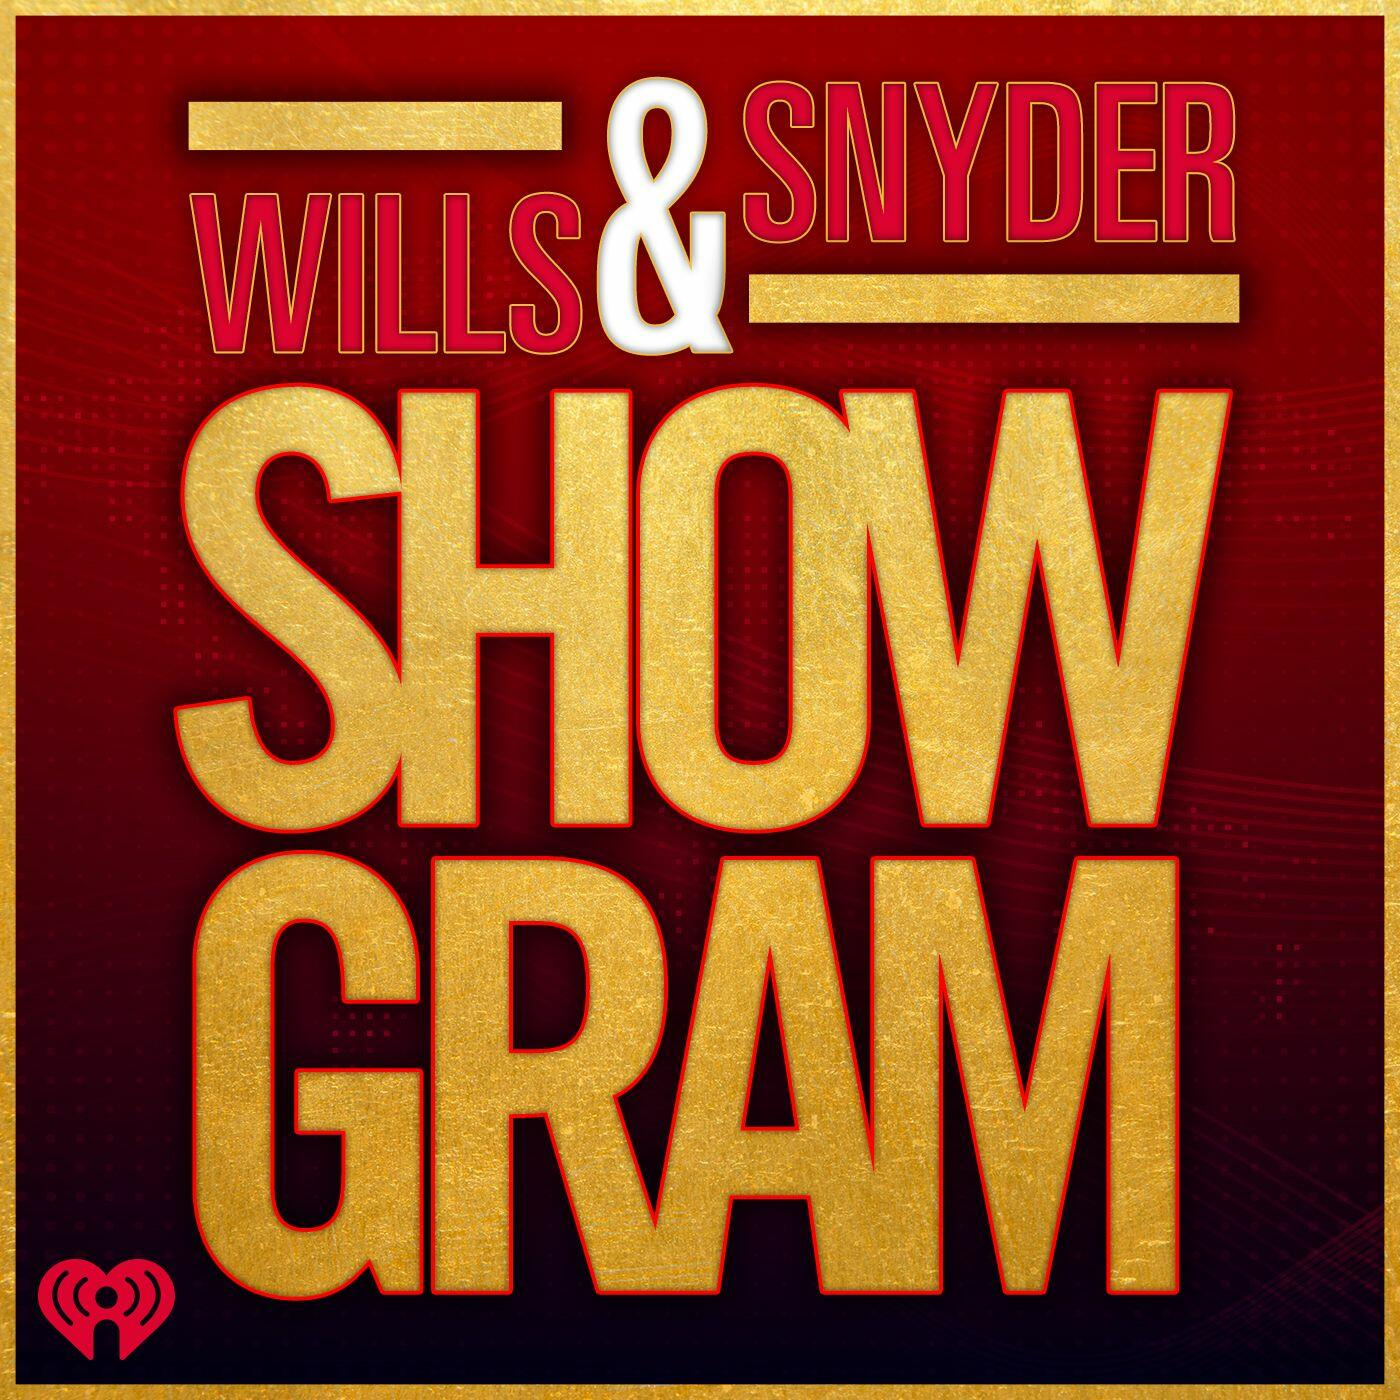 Listen to the Wills & Snyder ShowGram Episode - Indians Spring Training & Baseball Talk From FOX Sports-Indians Field Reporter-WTAM Andre Knott With Wills & Snyder on iHeartRadio | iHeartRadio